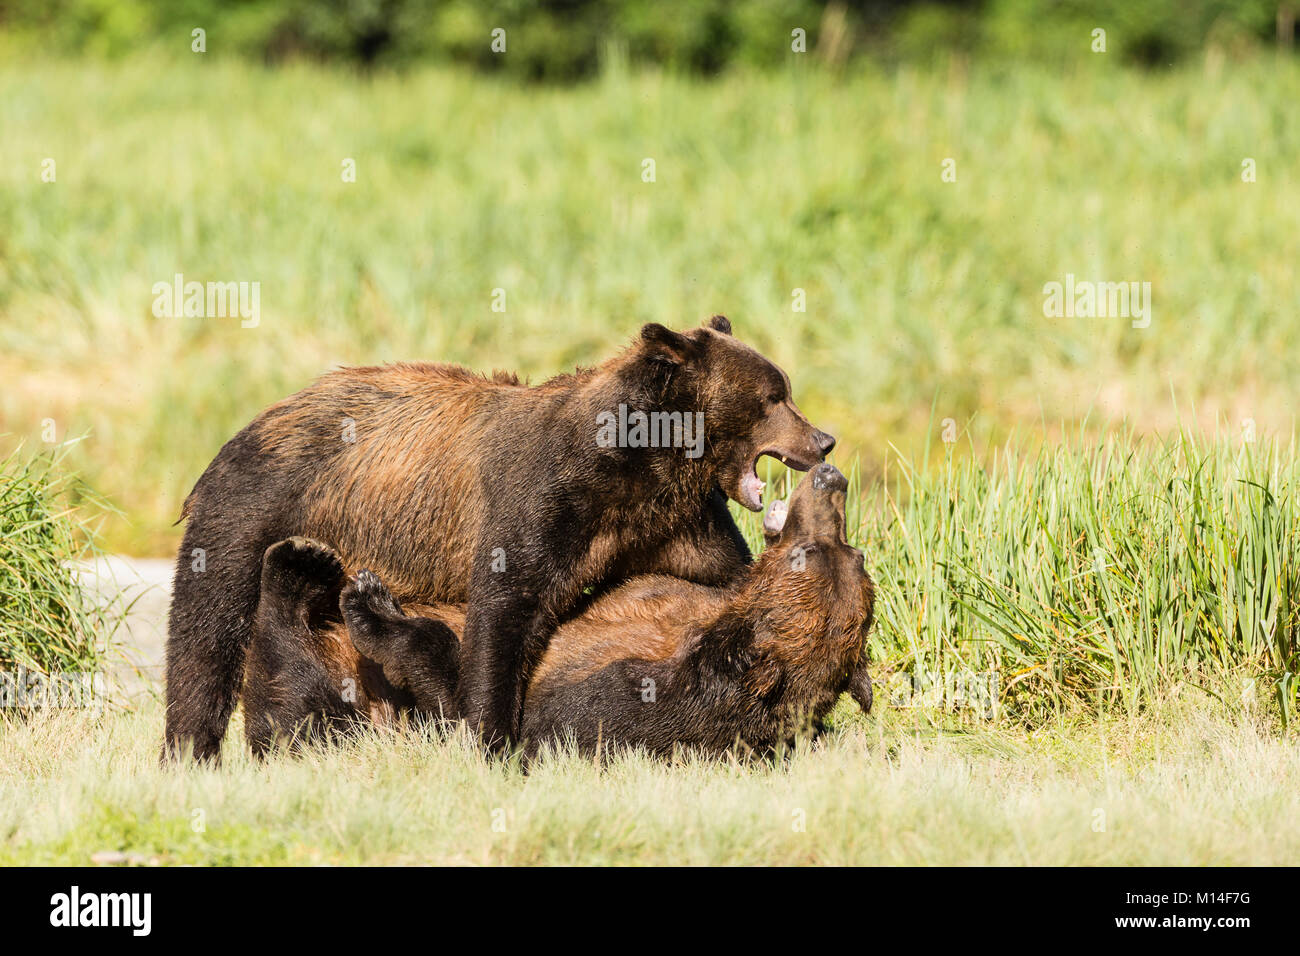 Male brown bears wrestle for dominance to fish for salmon along Geographic Creek at Geographic Harbor in Katmai - Stock Image